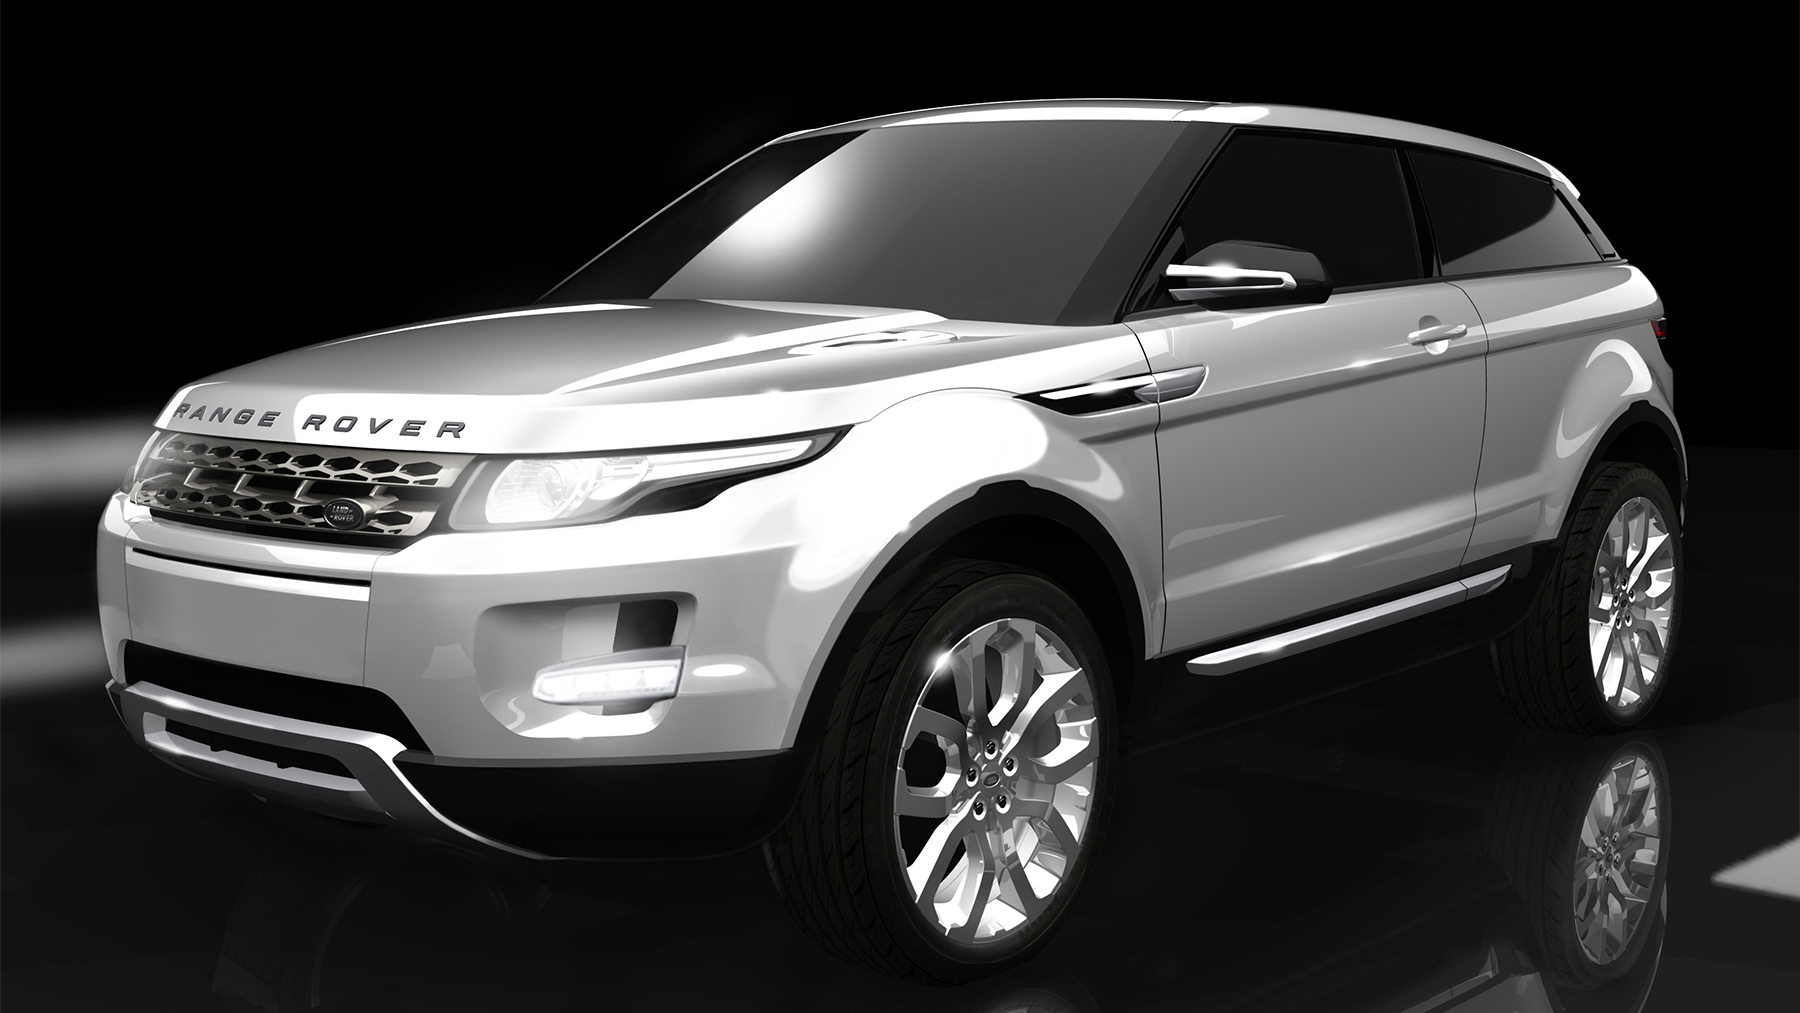 2012 range rover lrx first official image 001